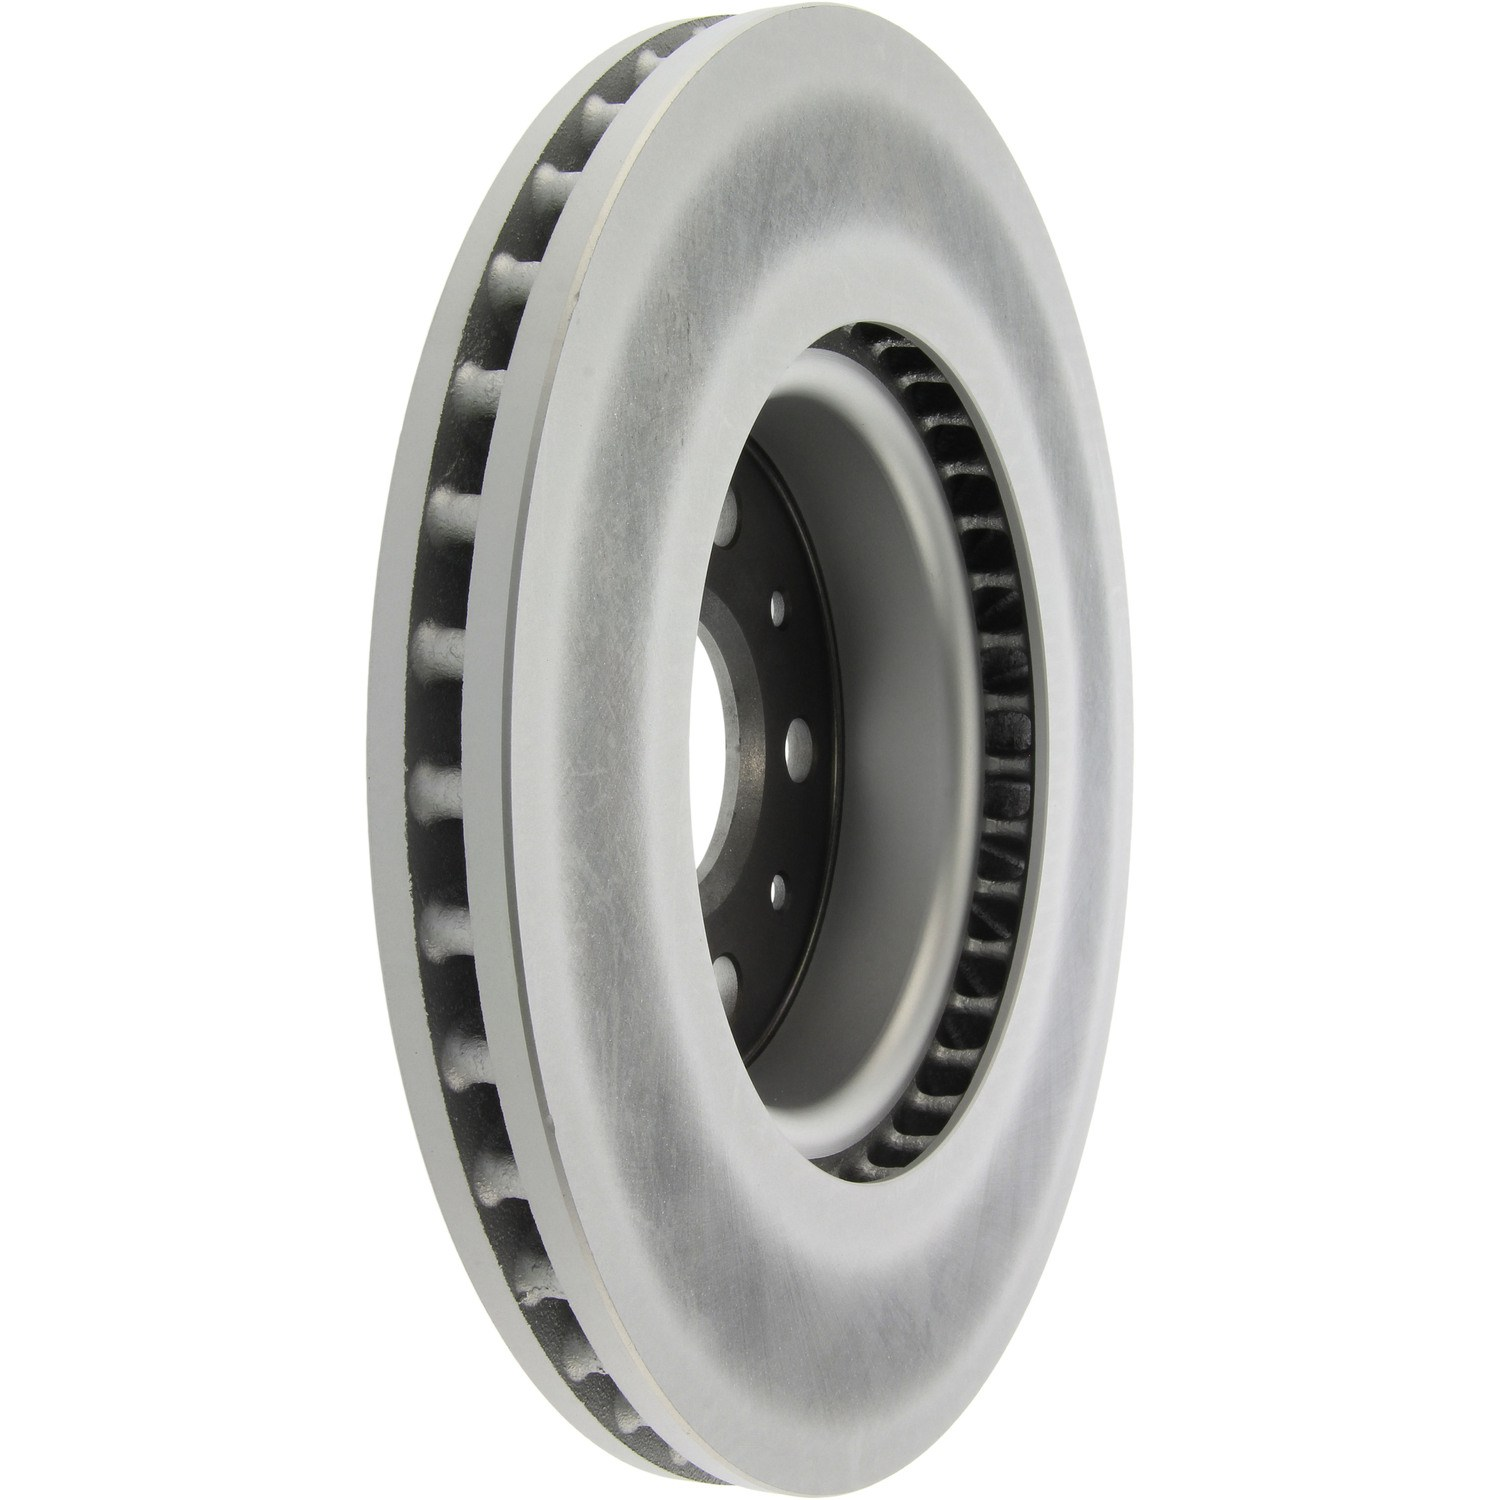 CENTRIC PARTS - GCX Application-Specific Brake Rotors - Hi-Carbon Partial Coating (Front) - CEC 320.62154C